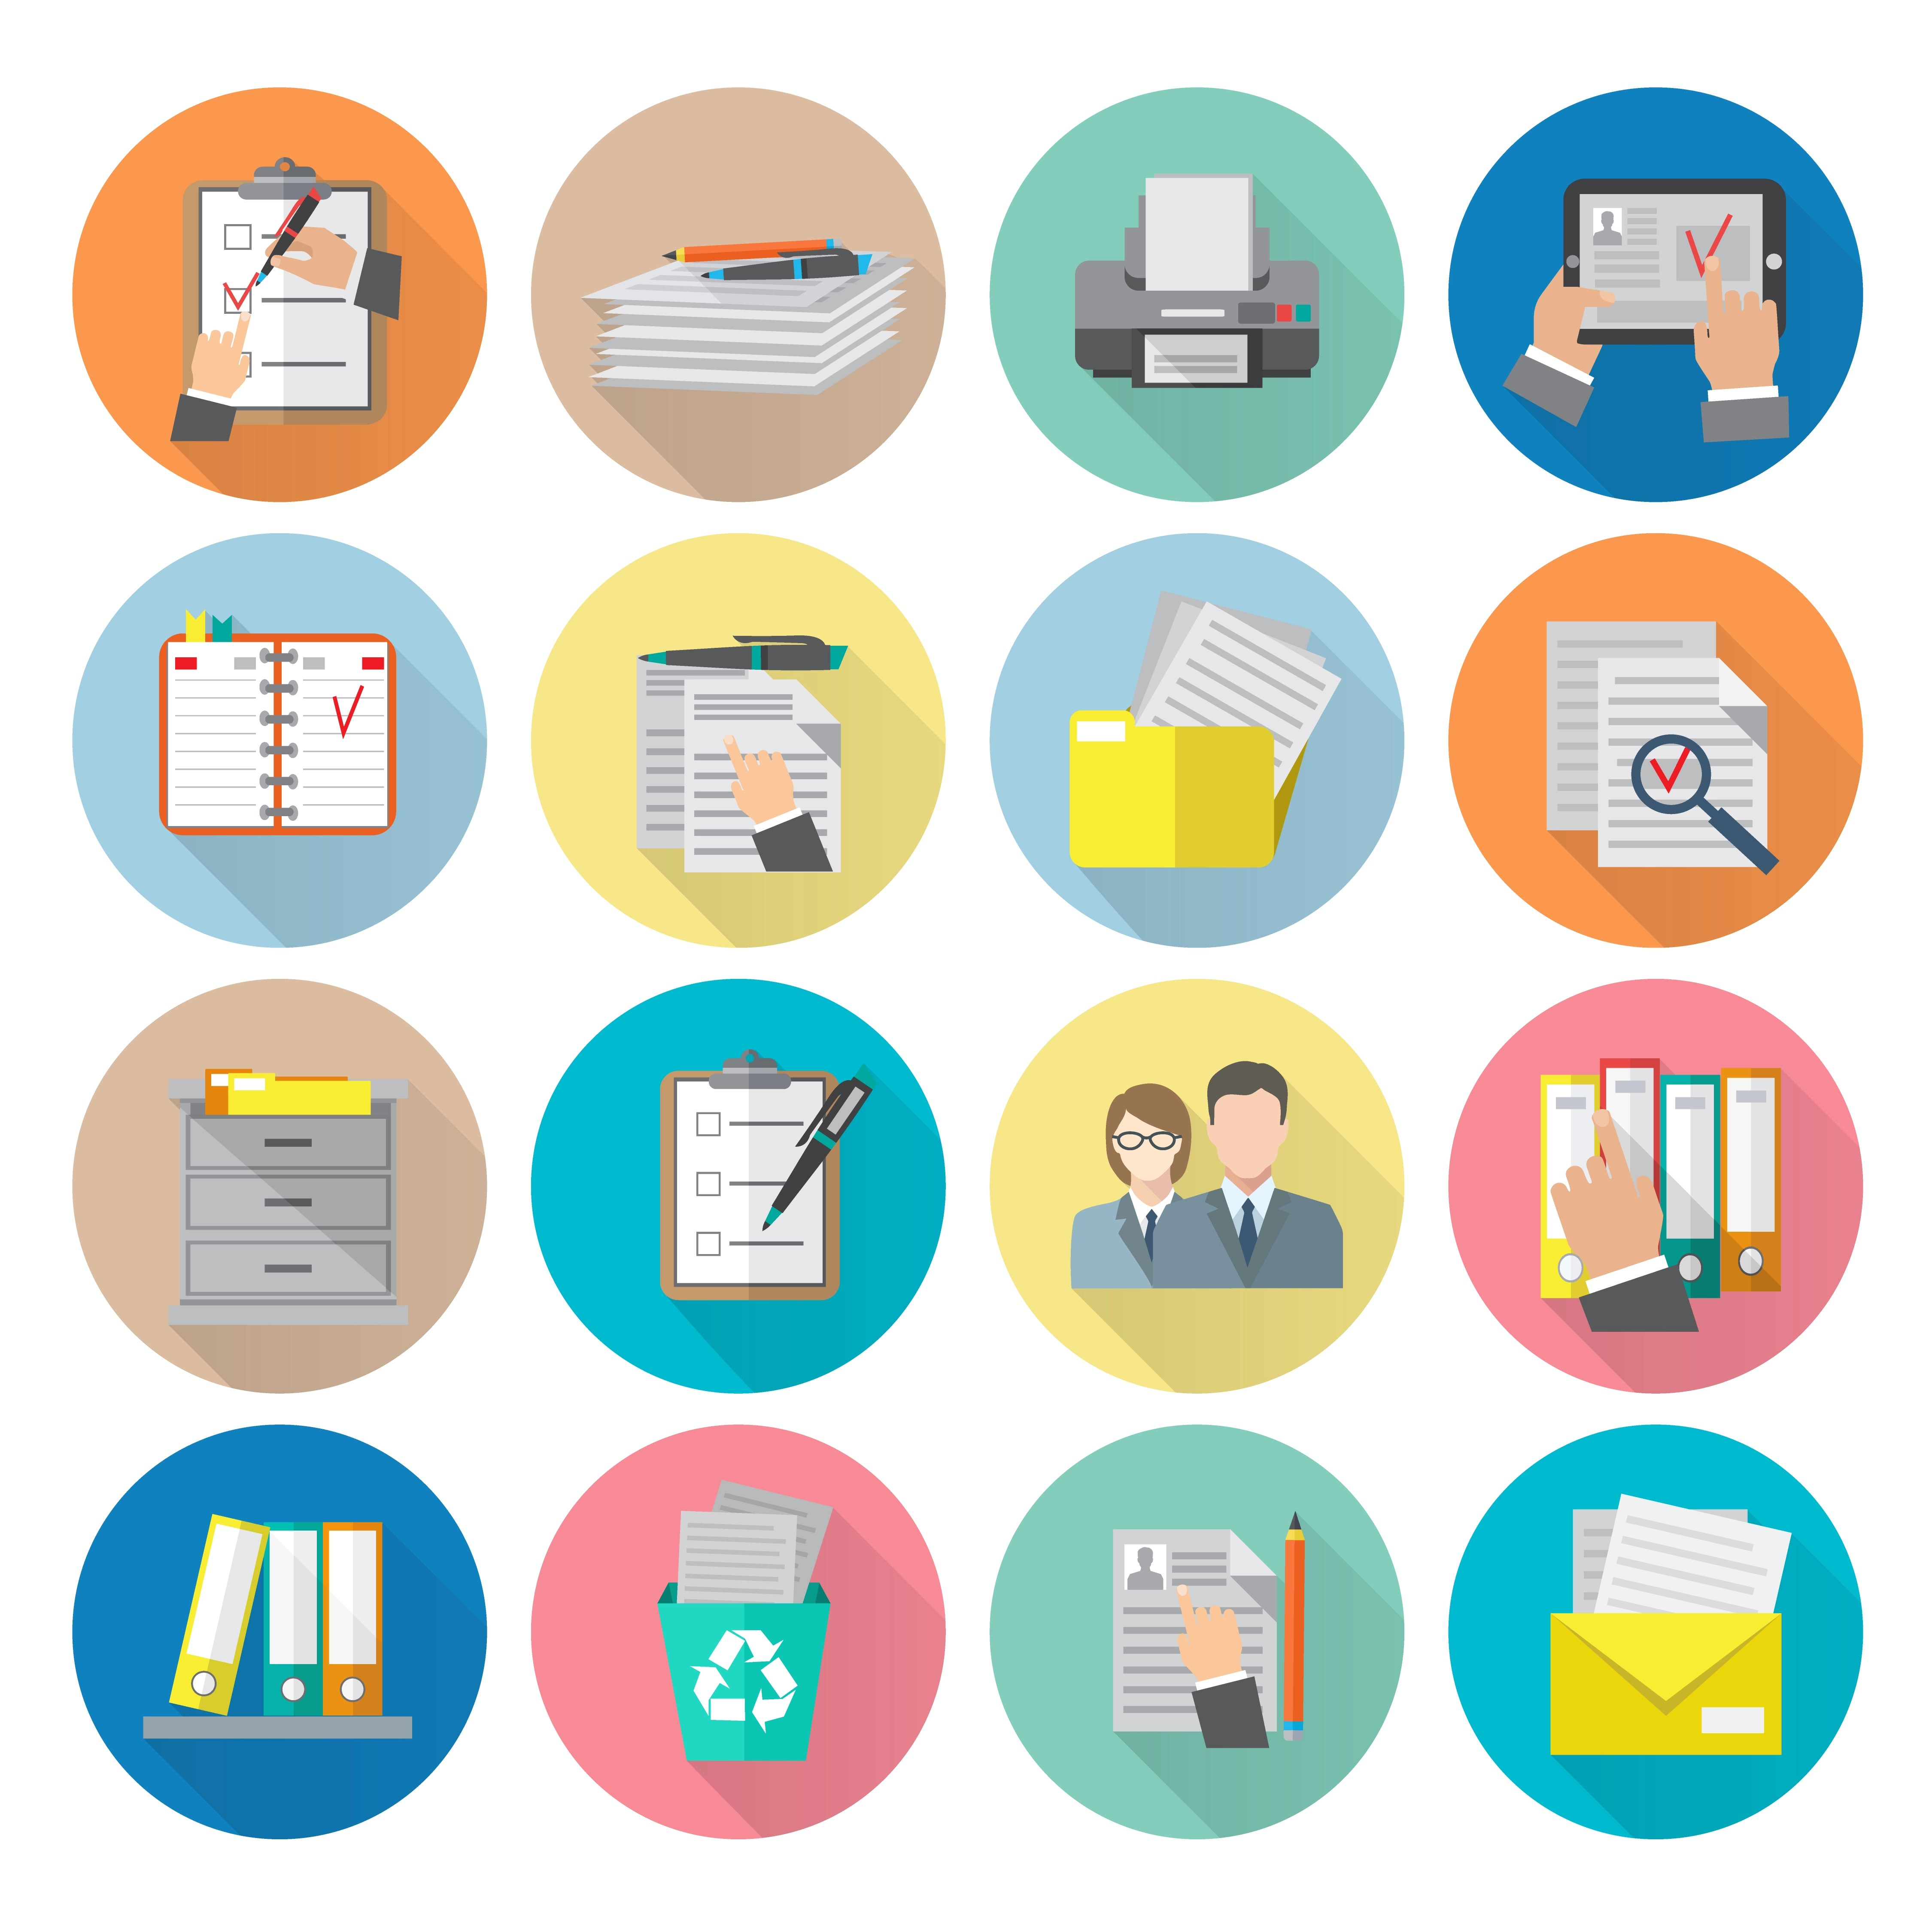 Filing Cabinet Icon Flat Document Icon Flat Download Free Vector Art Stock Graphics Images